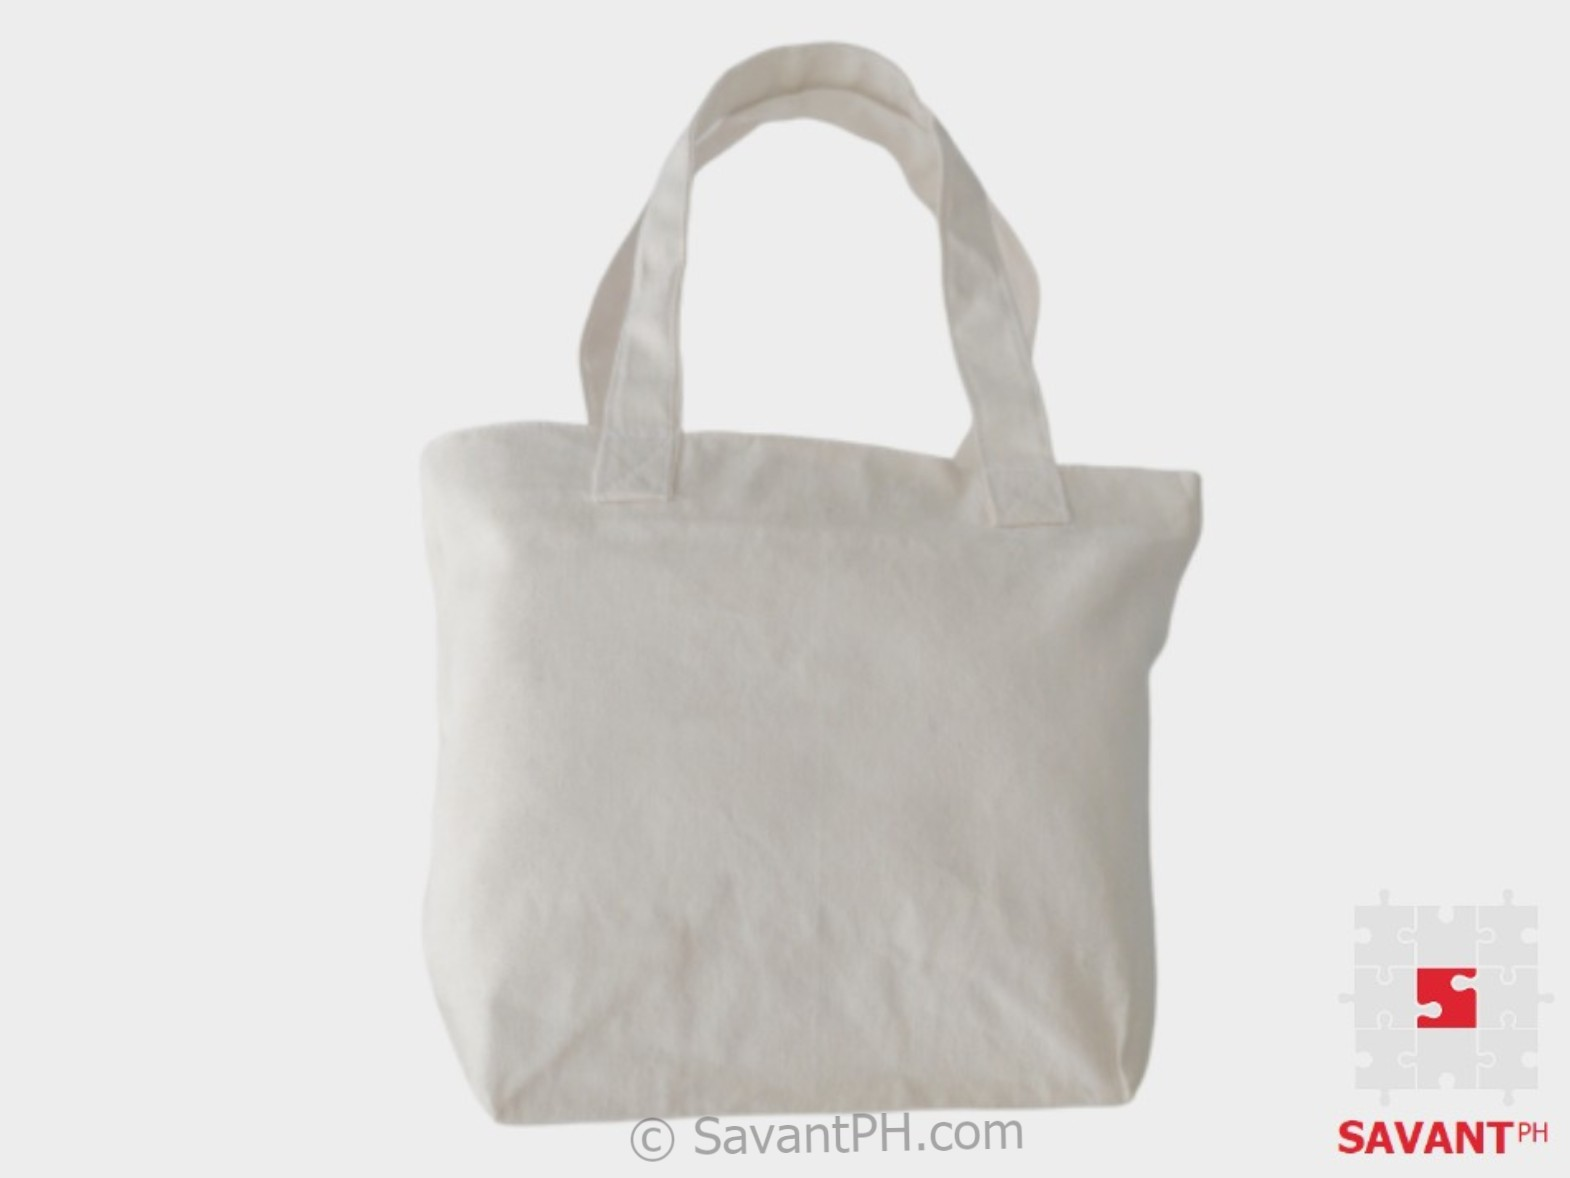 https://www.savantph.com/2019/06/plain-canvas-handbag.html